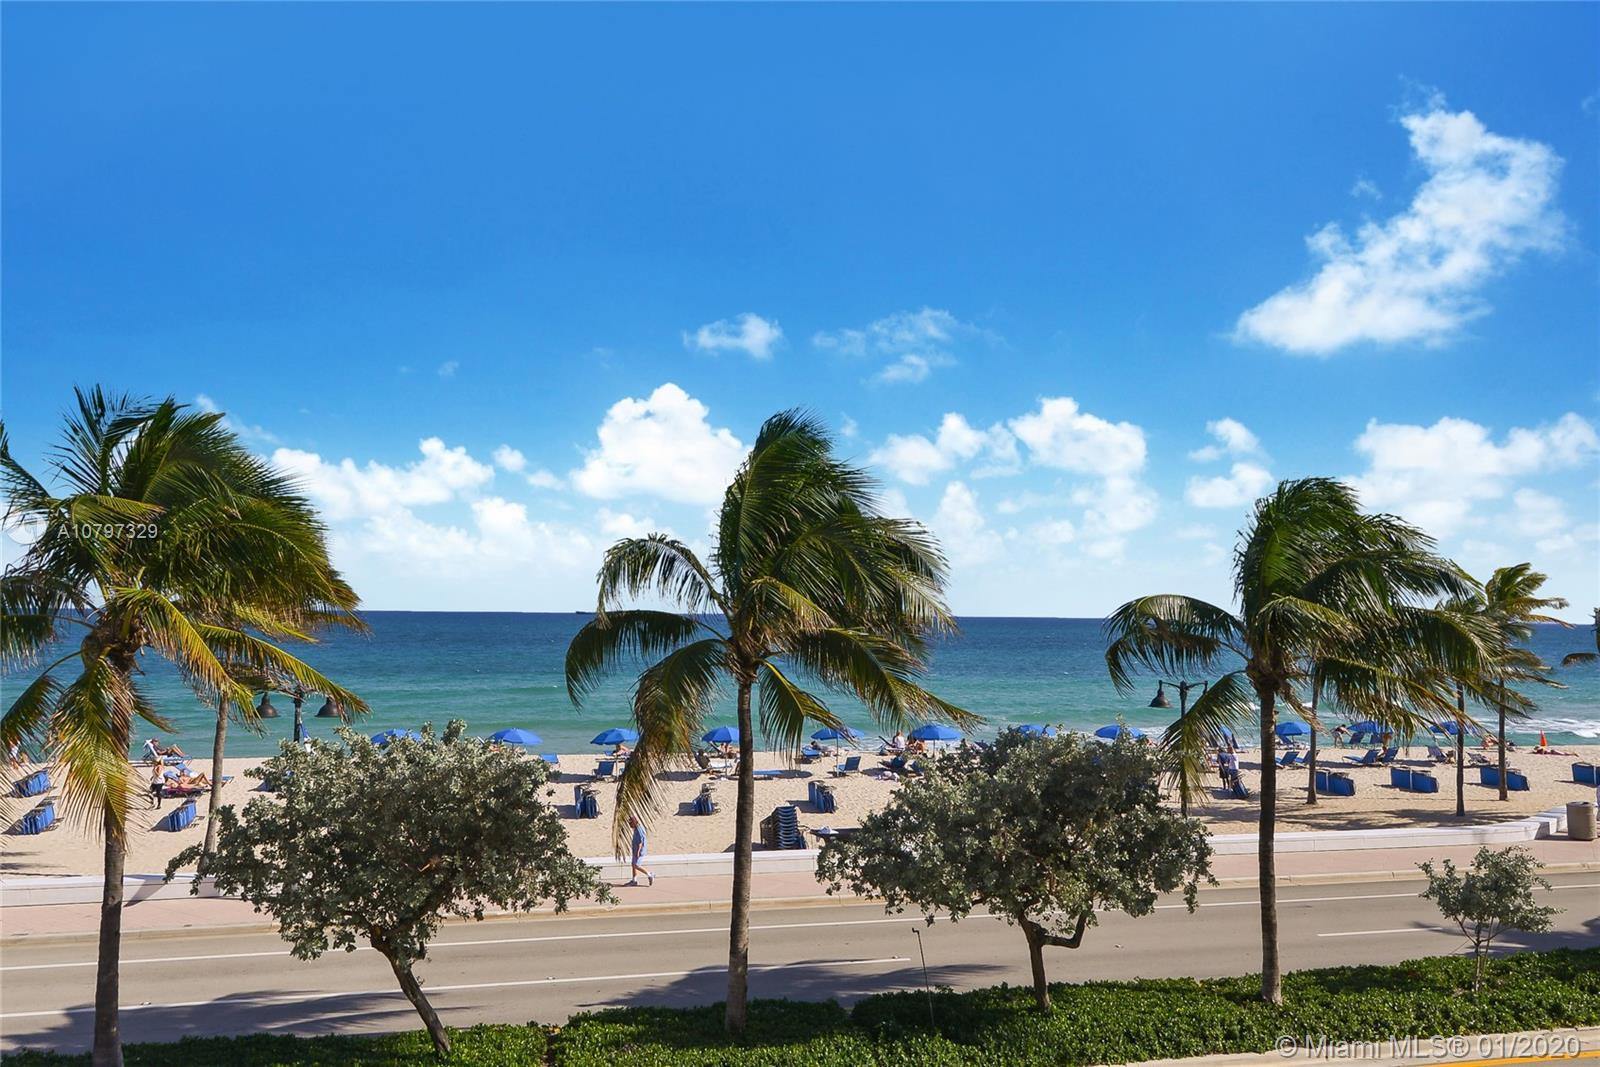 The lifestyle you have been dreaming of is now possible. This luxurious condo is located front row o